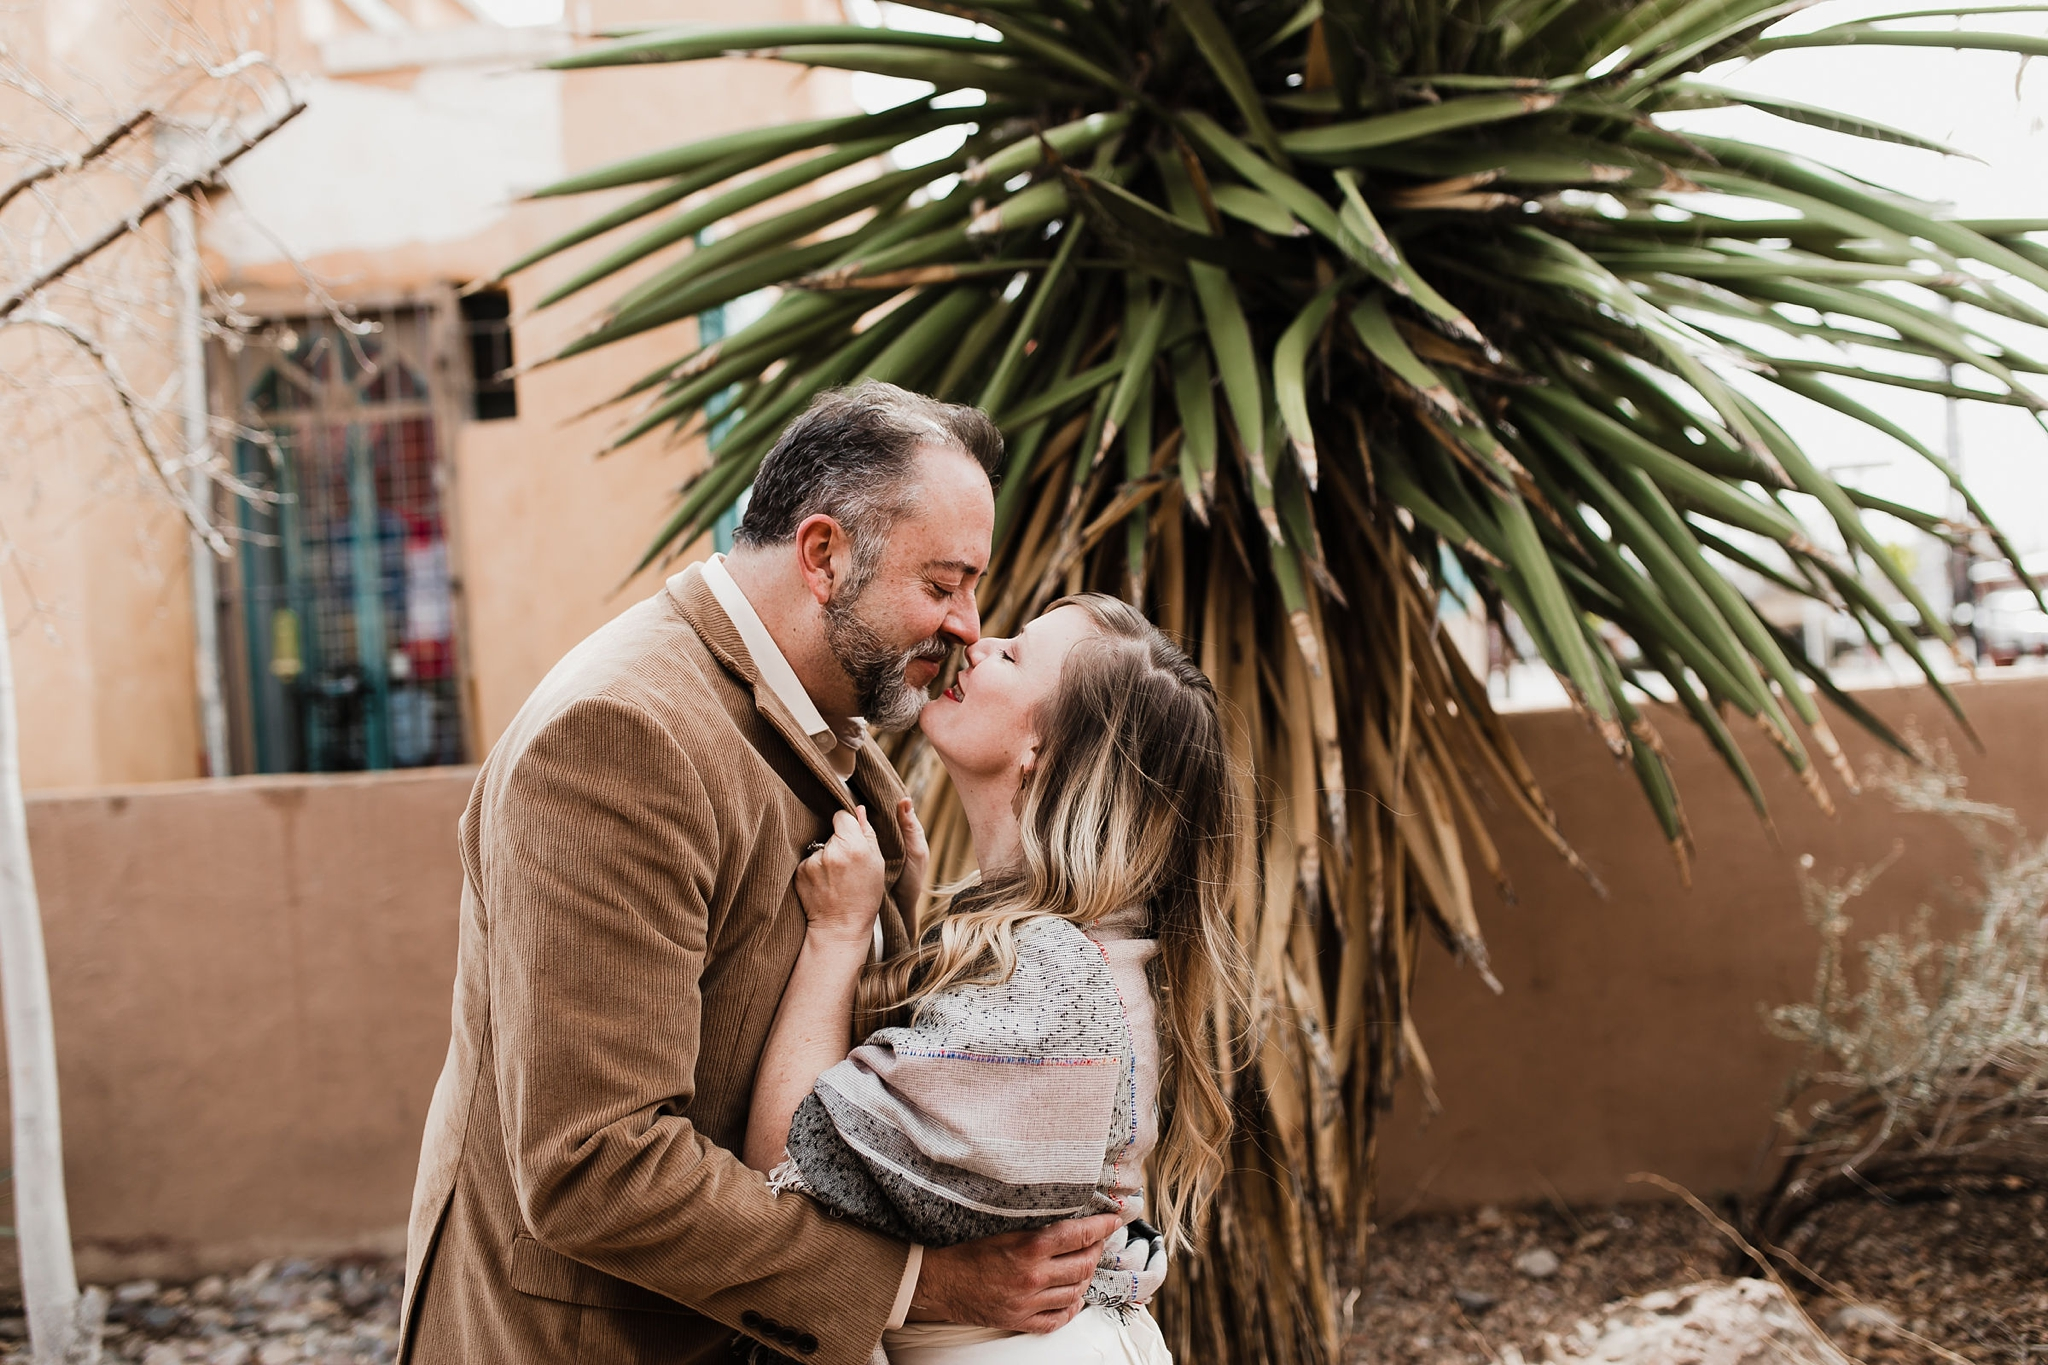 Alicia+lucia+photography+-+albuquerque+wedding+photographer+-+santa+fe+wedding+photography+-+new+mexico+wedding+photographer+-+new+mexico+engagement+-+albuquerque+engagement+-+old+town+engagement_0022.jpg